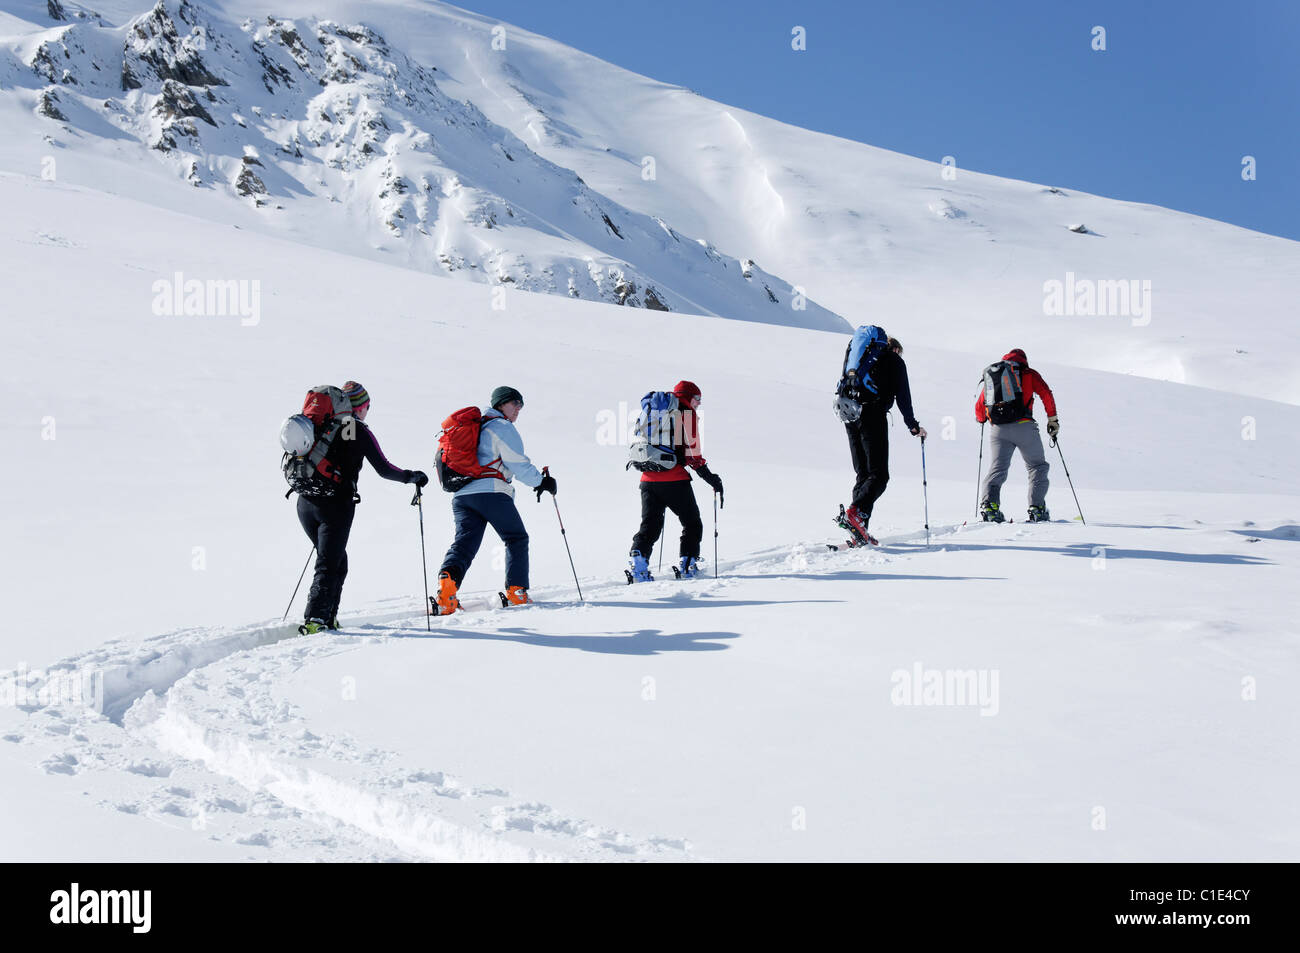 A group of ski tourers in the Silvretta region of Austria Stock Photo